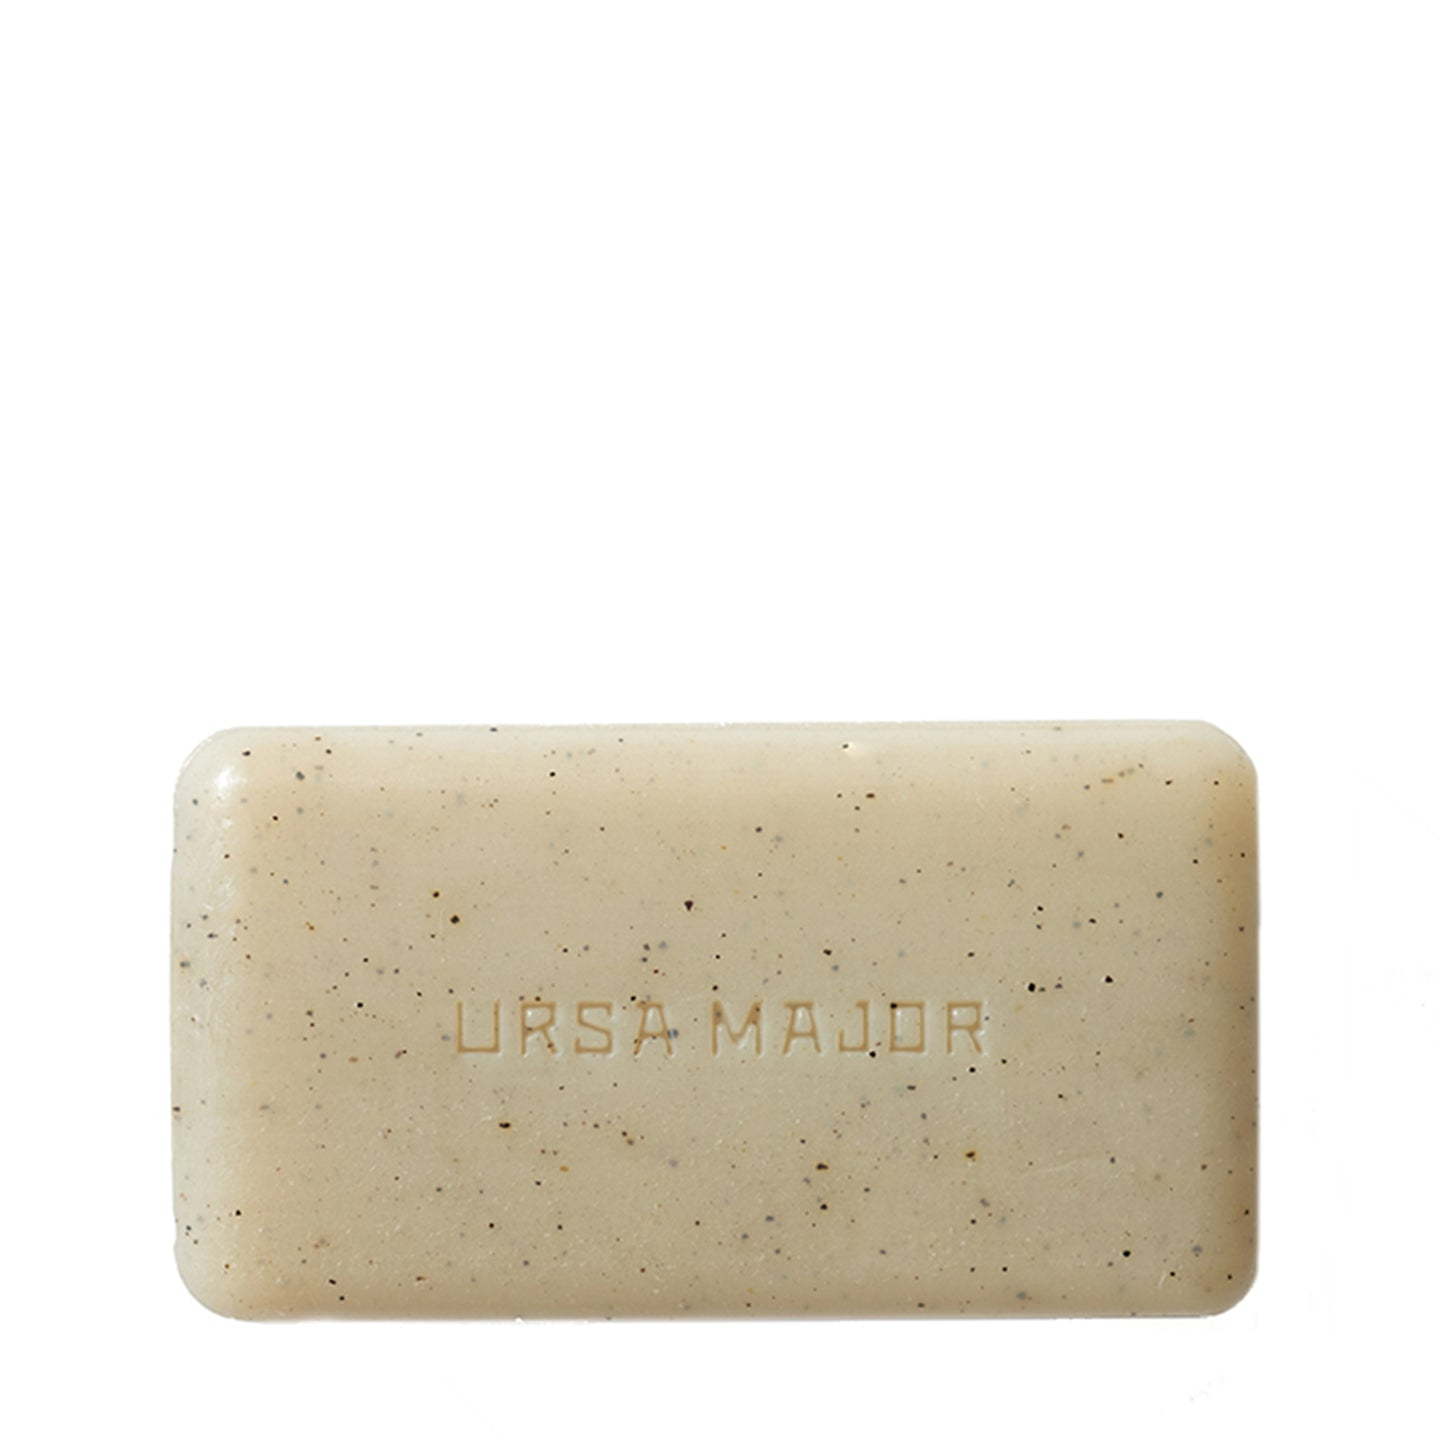 Ayla - Ursa Major Morning Mojo Bar Soap